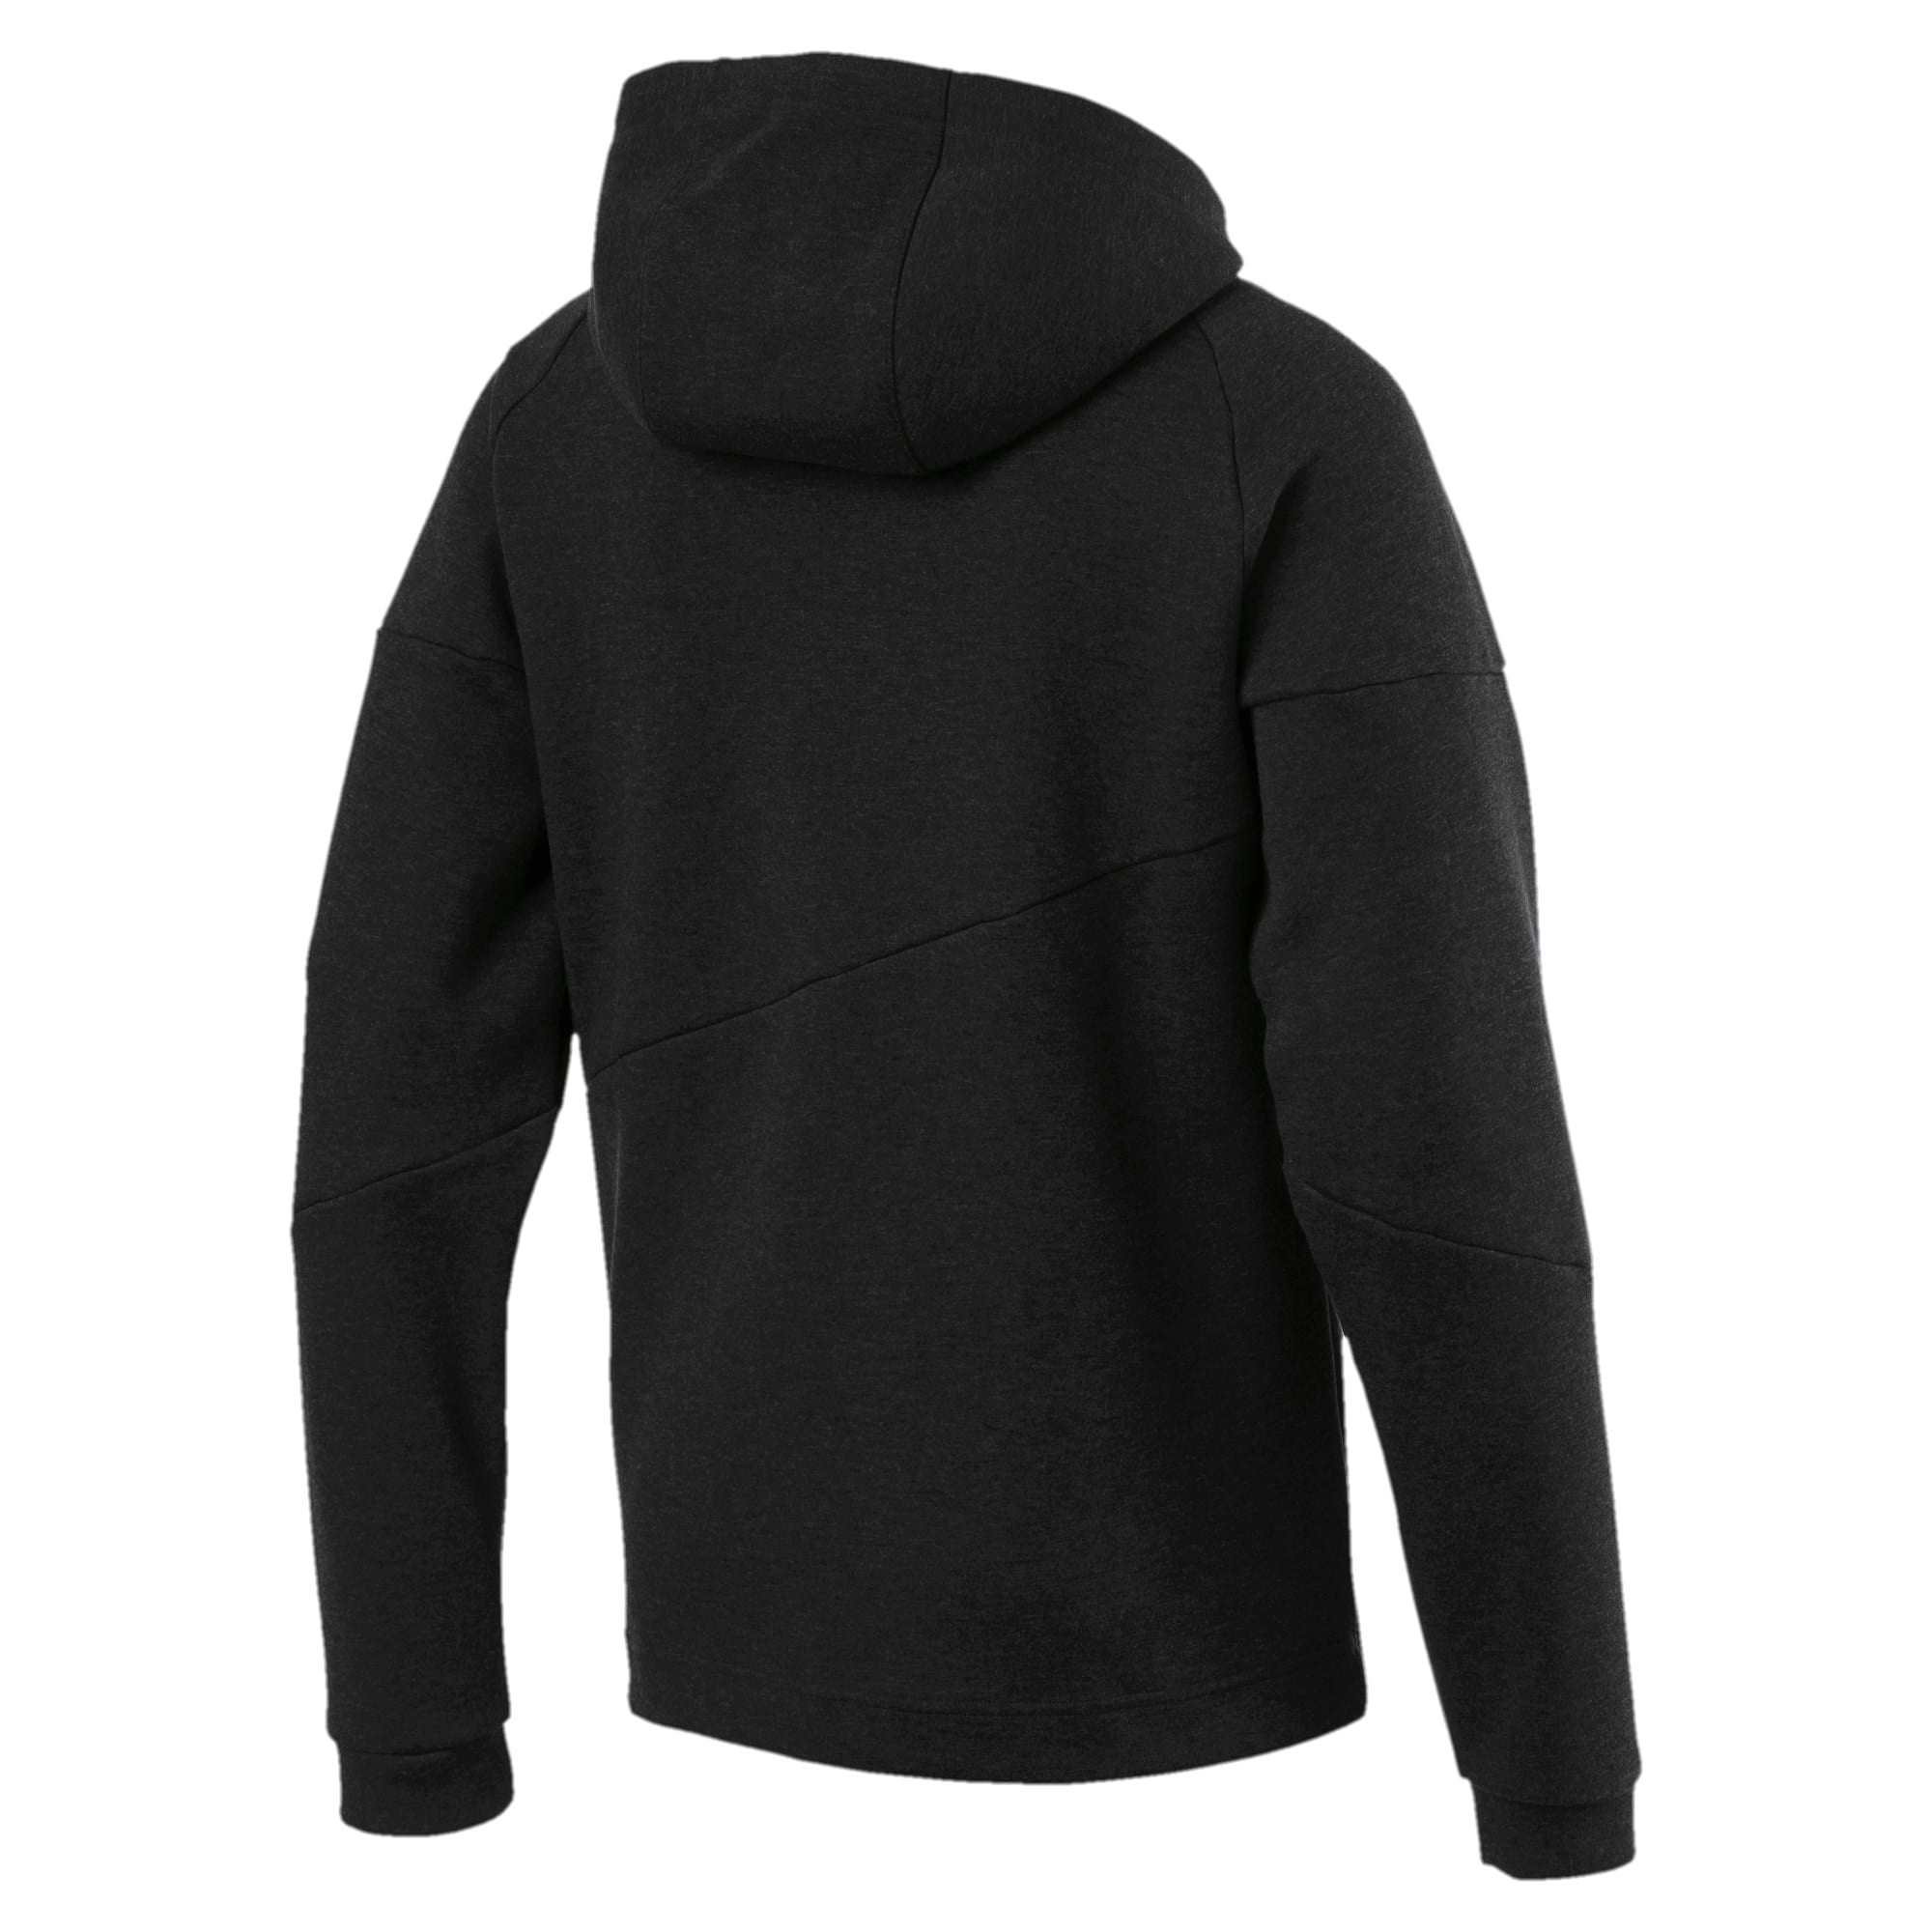 Thumbnail 6 of BND Tech Second Layer Knitted Hooded Men's Jacket, Puma Black Heather, medium-IND